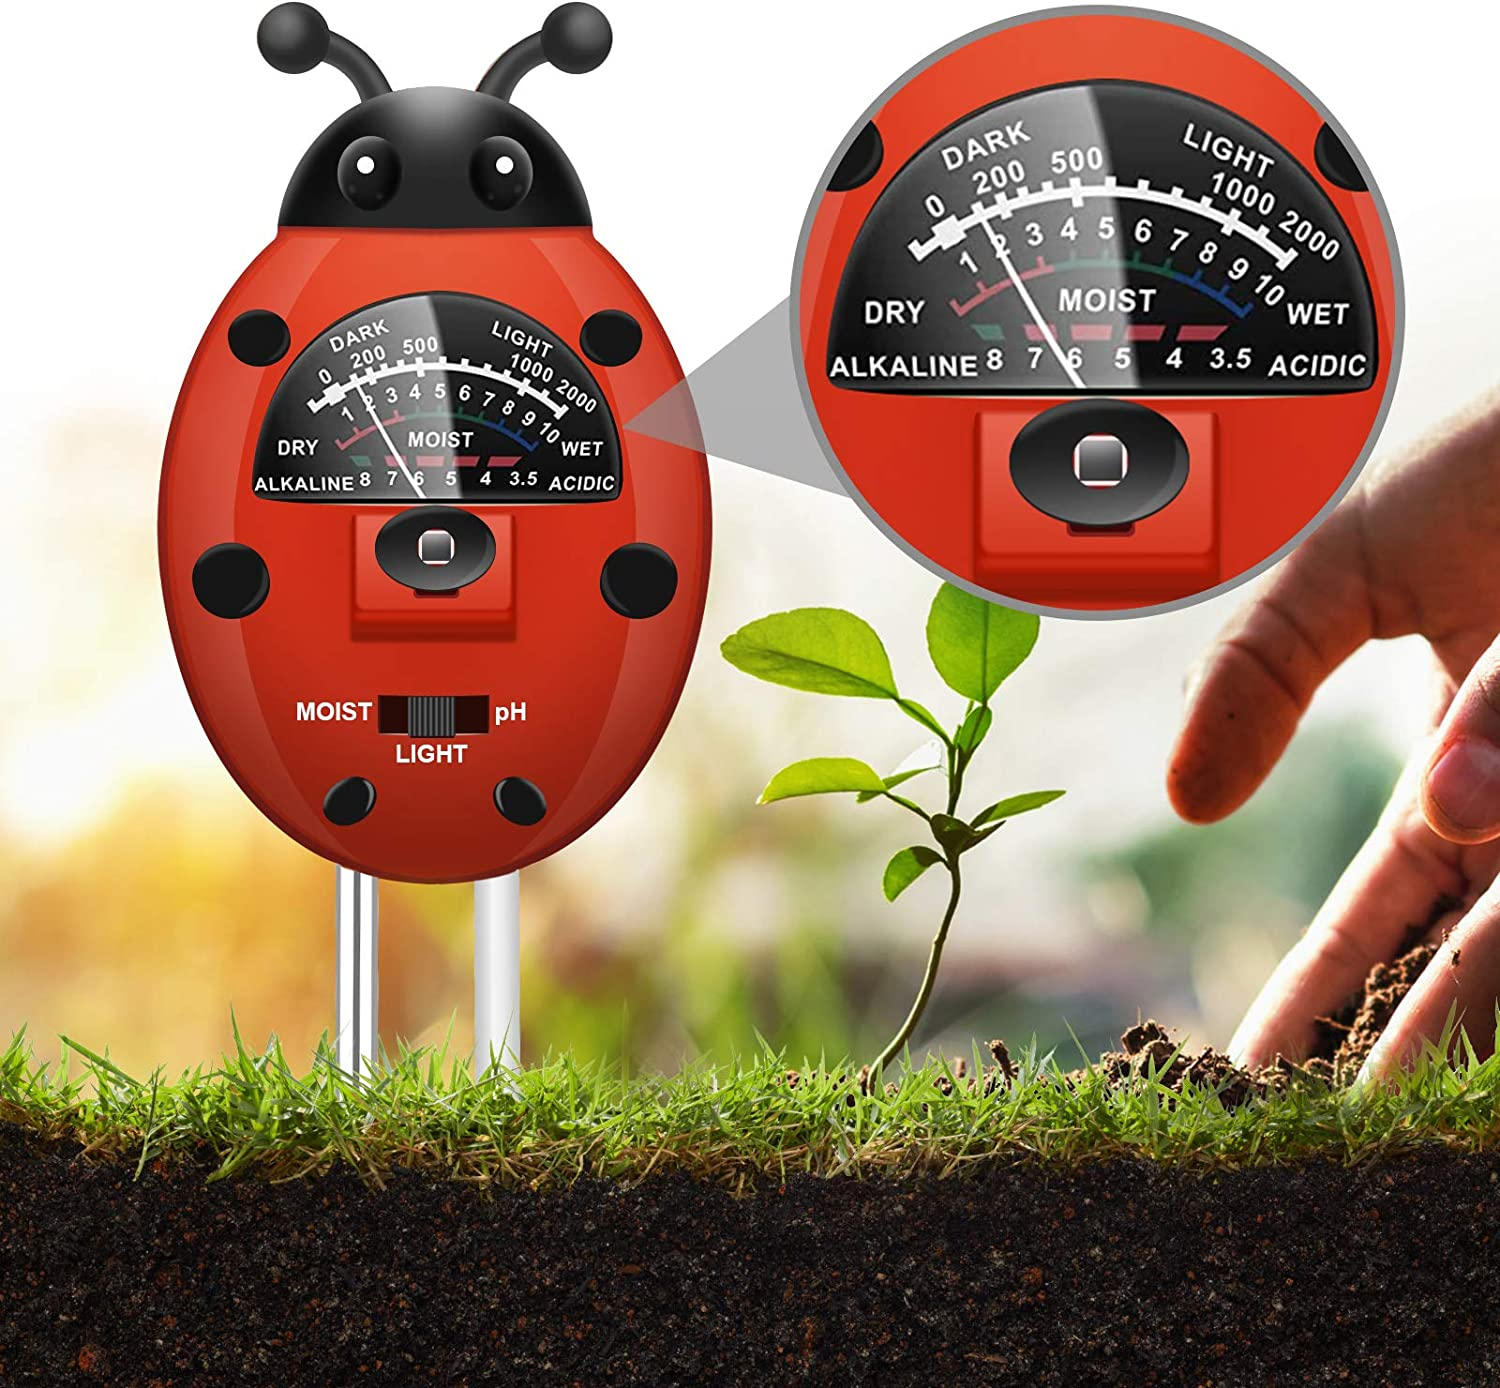 UNIWA Plant Moisture Meter, 3-in-1 Soil Tester Kit with Plant Moisture, Light and pH Tester, Soil pH Meter for Garden, Farm, Lawn, Indoor and Outdoor (No Battery Needed), Colorful Ladybug Shape